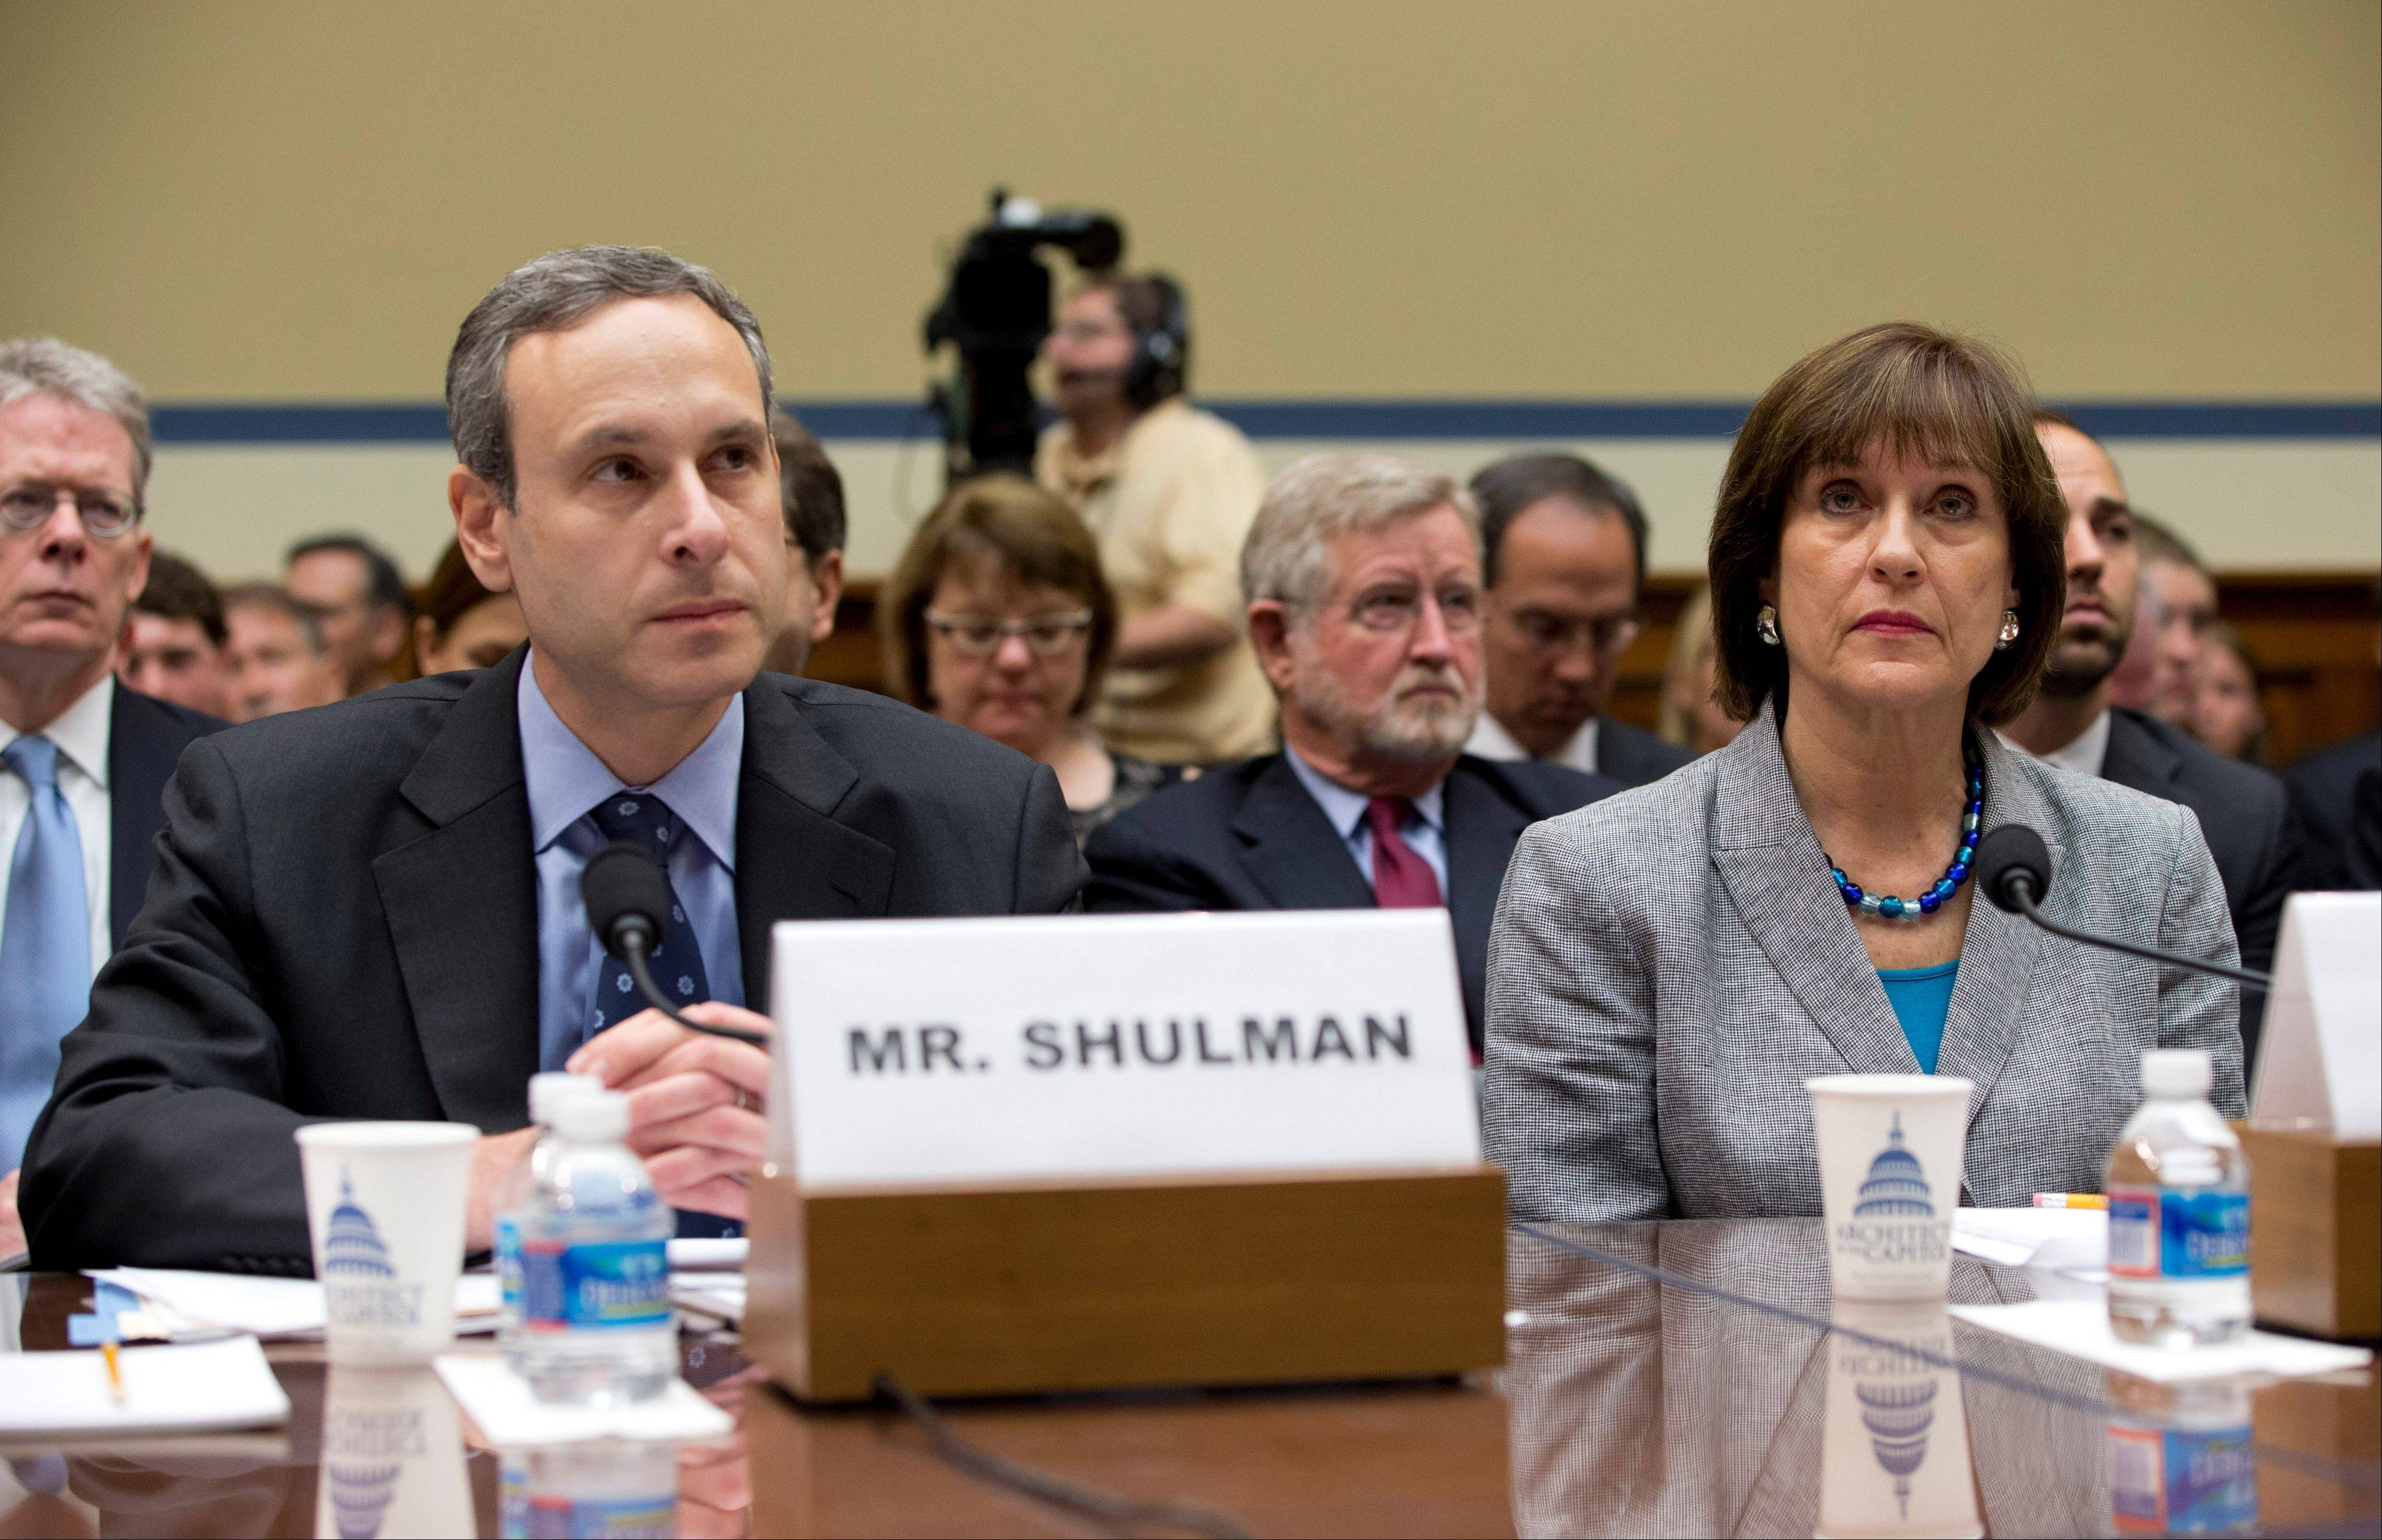 IRS official Lois Lerner, right, and former IRS Commissioner Douglas Shulman sit Wednesday at the witness table on Capitol Hill in Washington, prior to the start of a House Oversight and Government Reform Committee hearing.